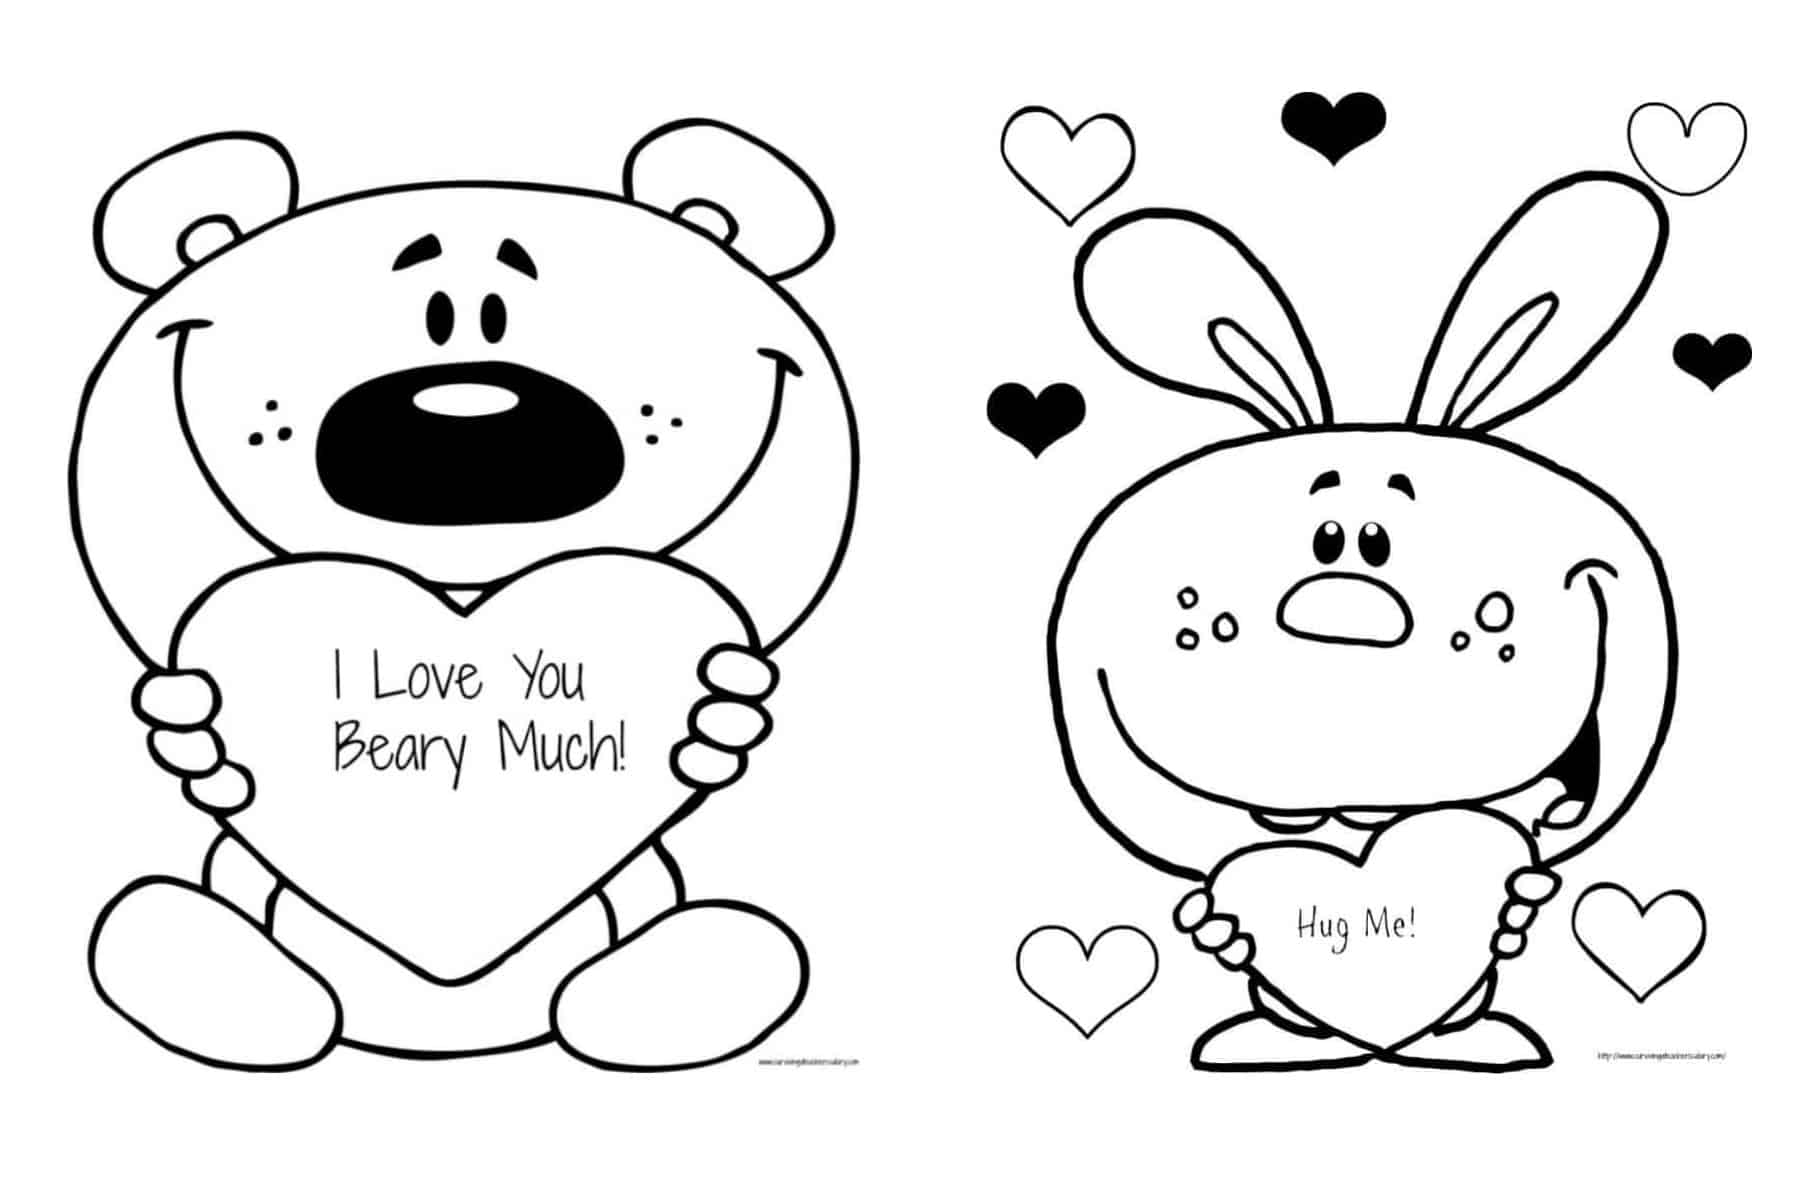 i love you coloring sheets free valentine39s quoti love you beary muchquot coloring page i love coloring you sheets